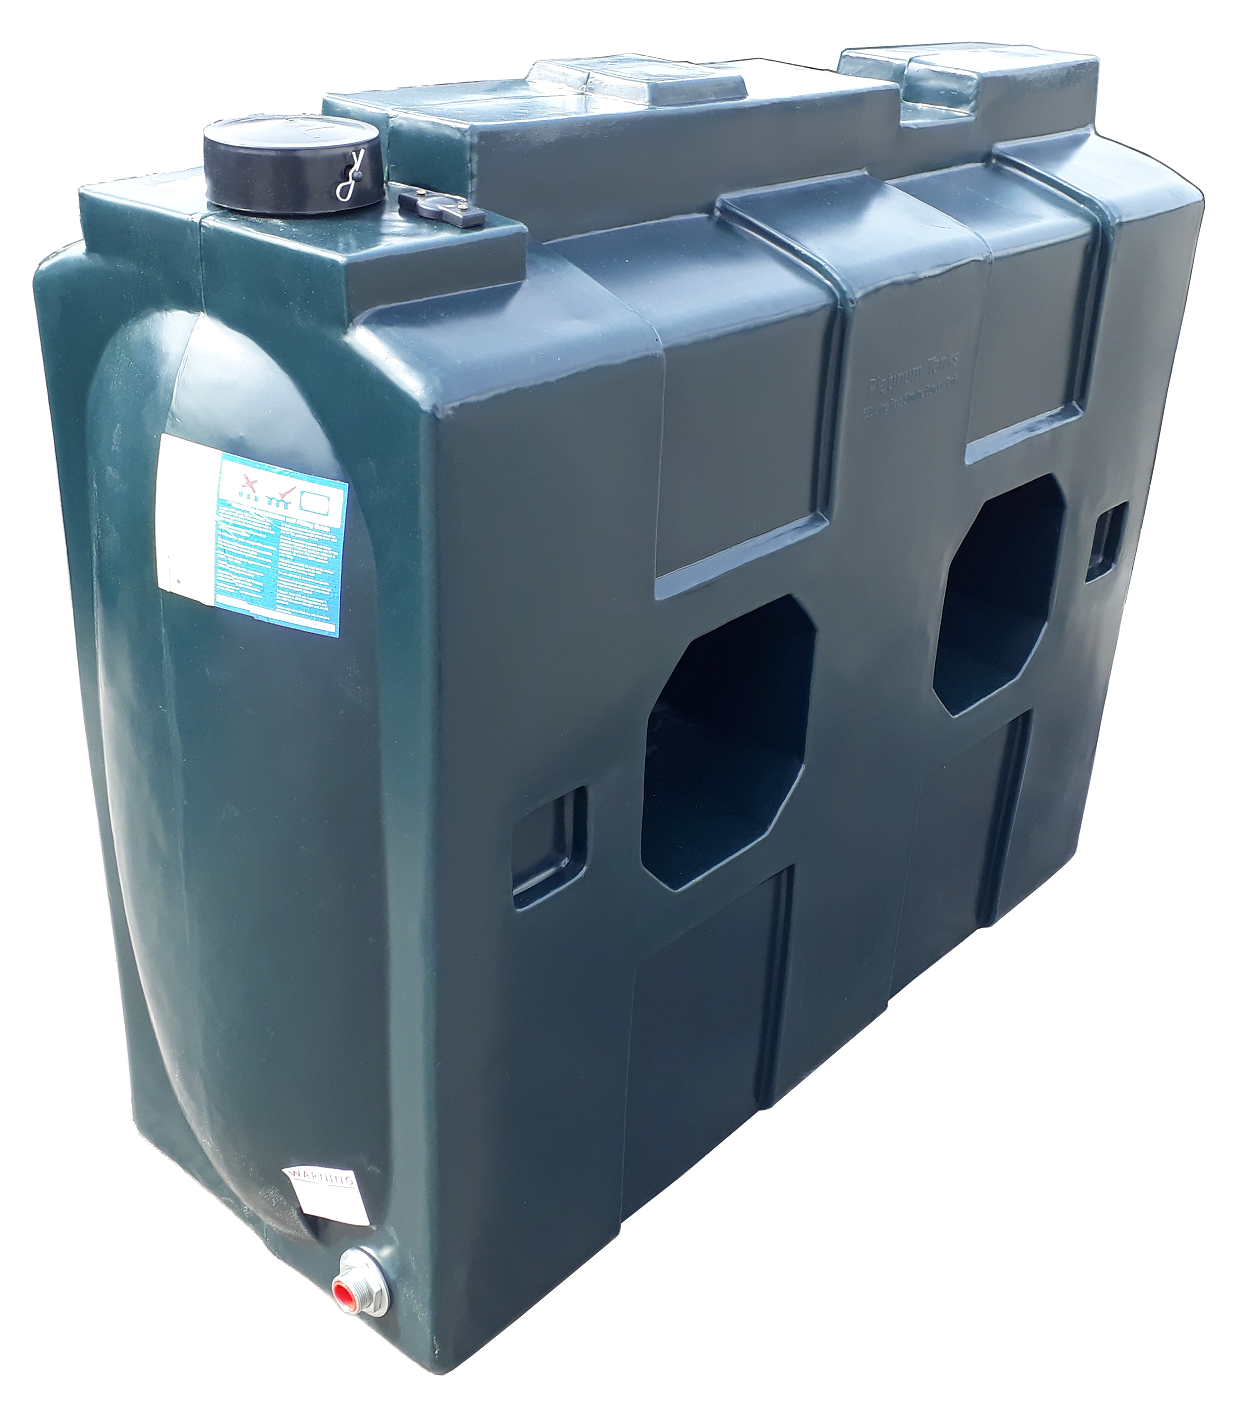 650 Litre Rectangular Oil Tank Image